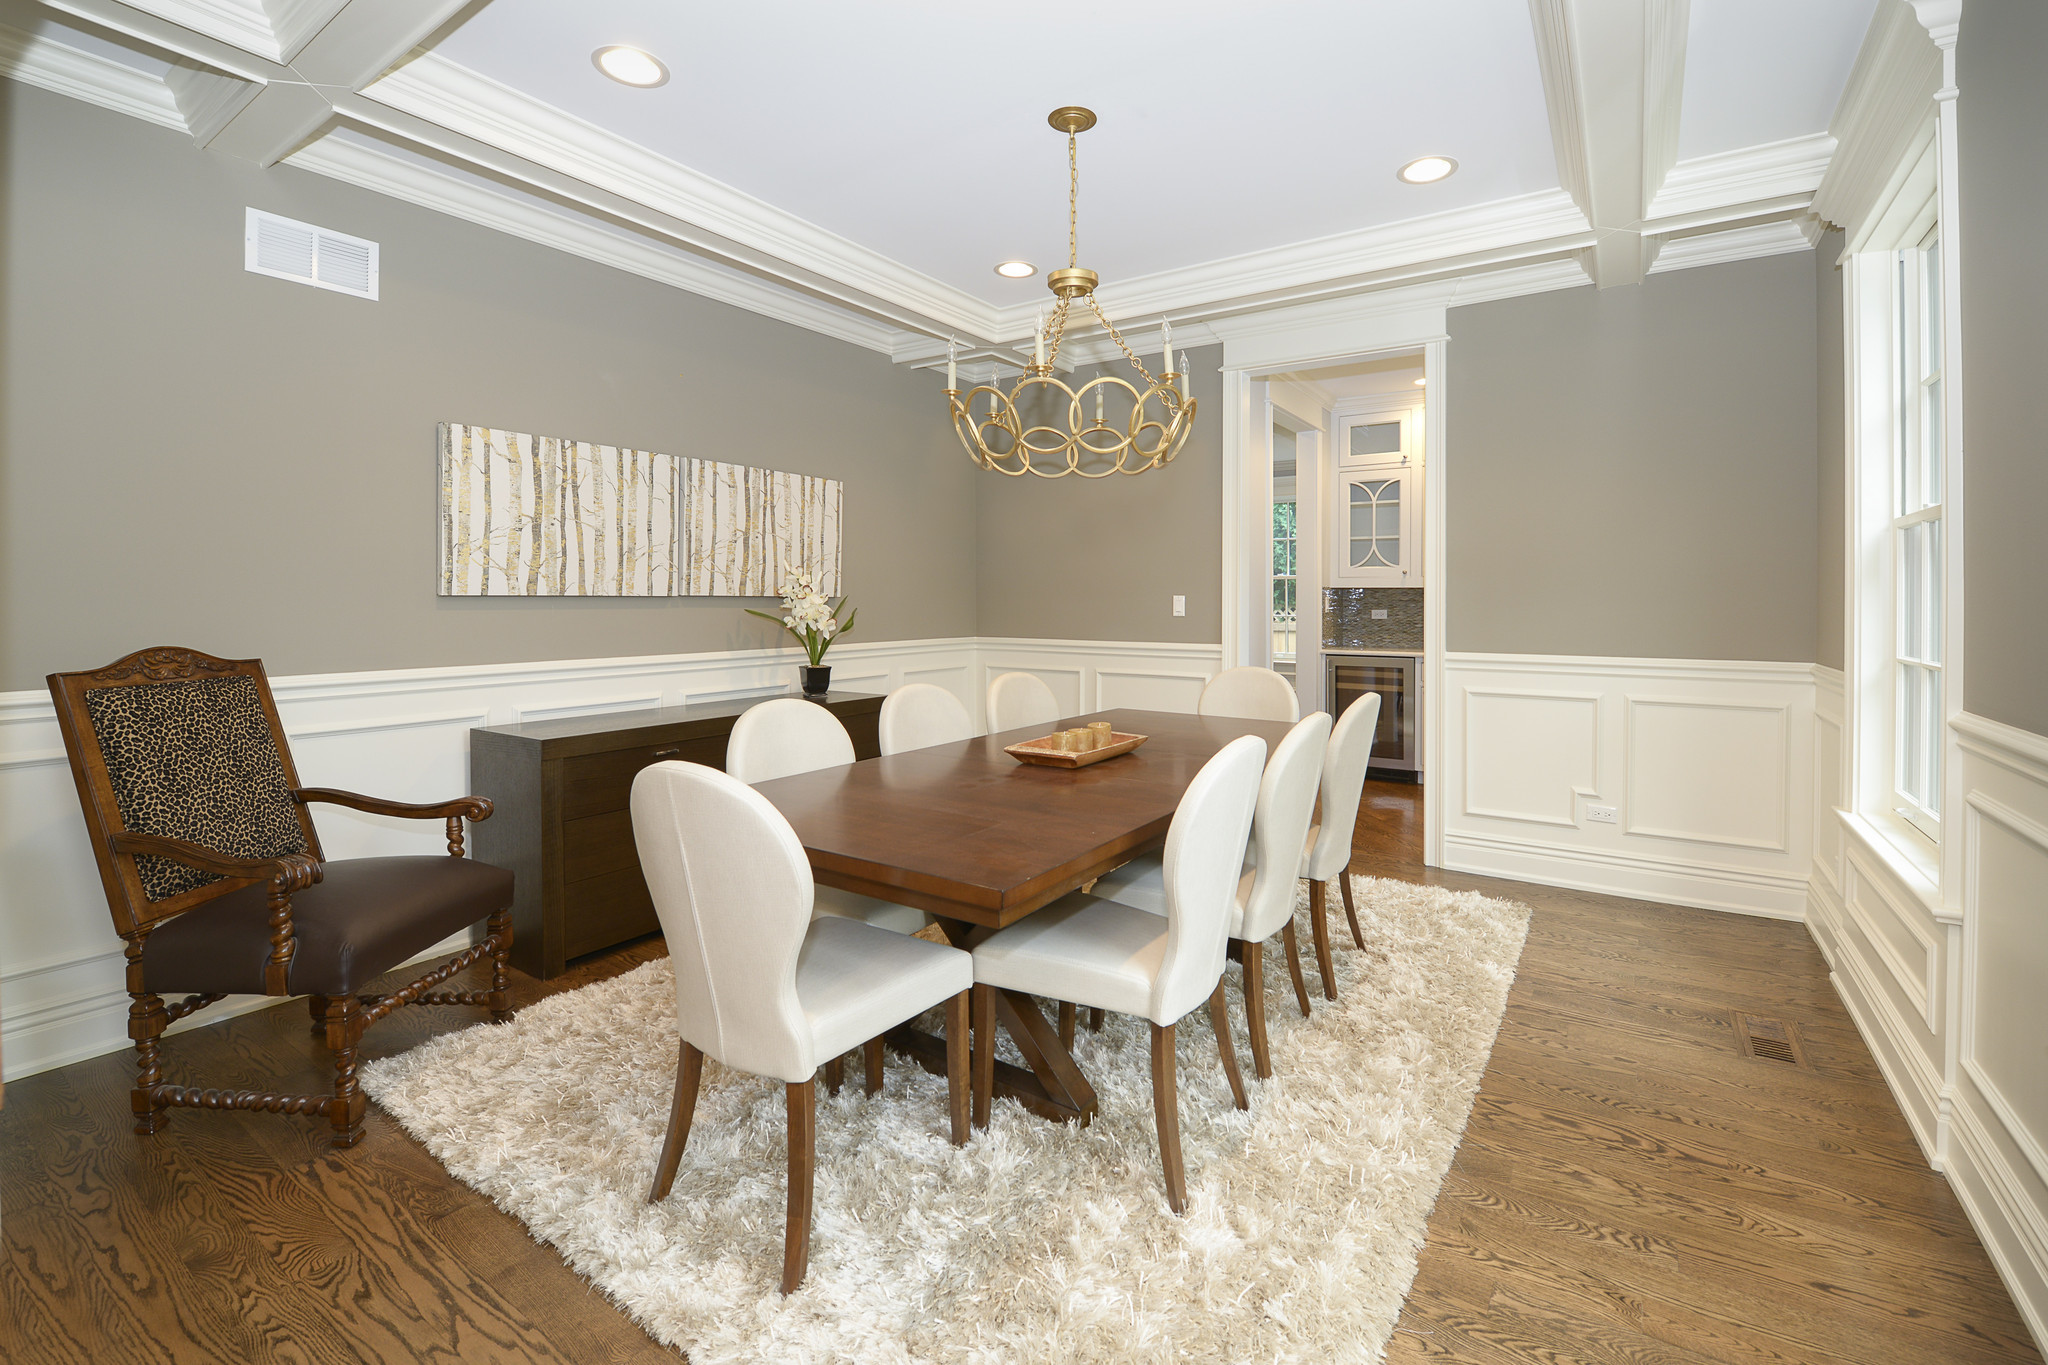 Wainscoting formal dining room - Wainscoting Formal Dining Room Sets